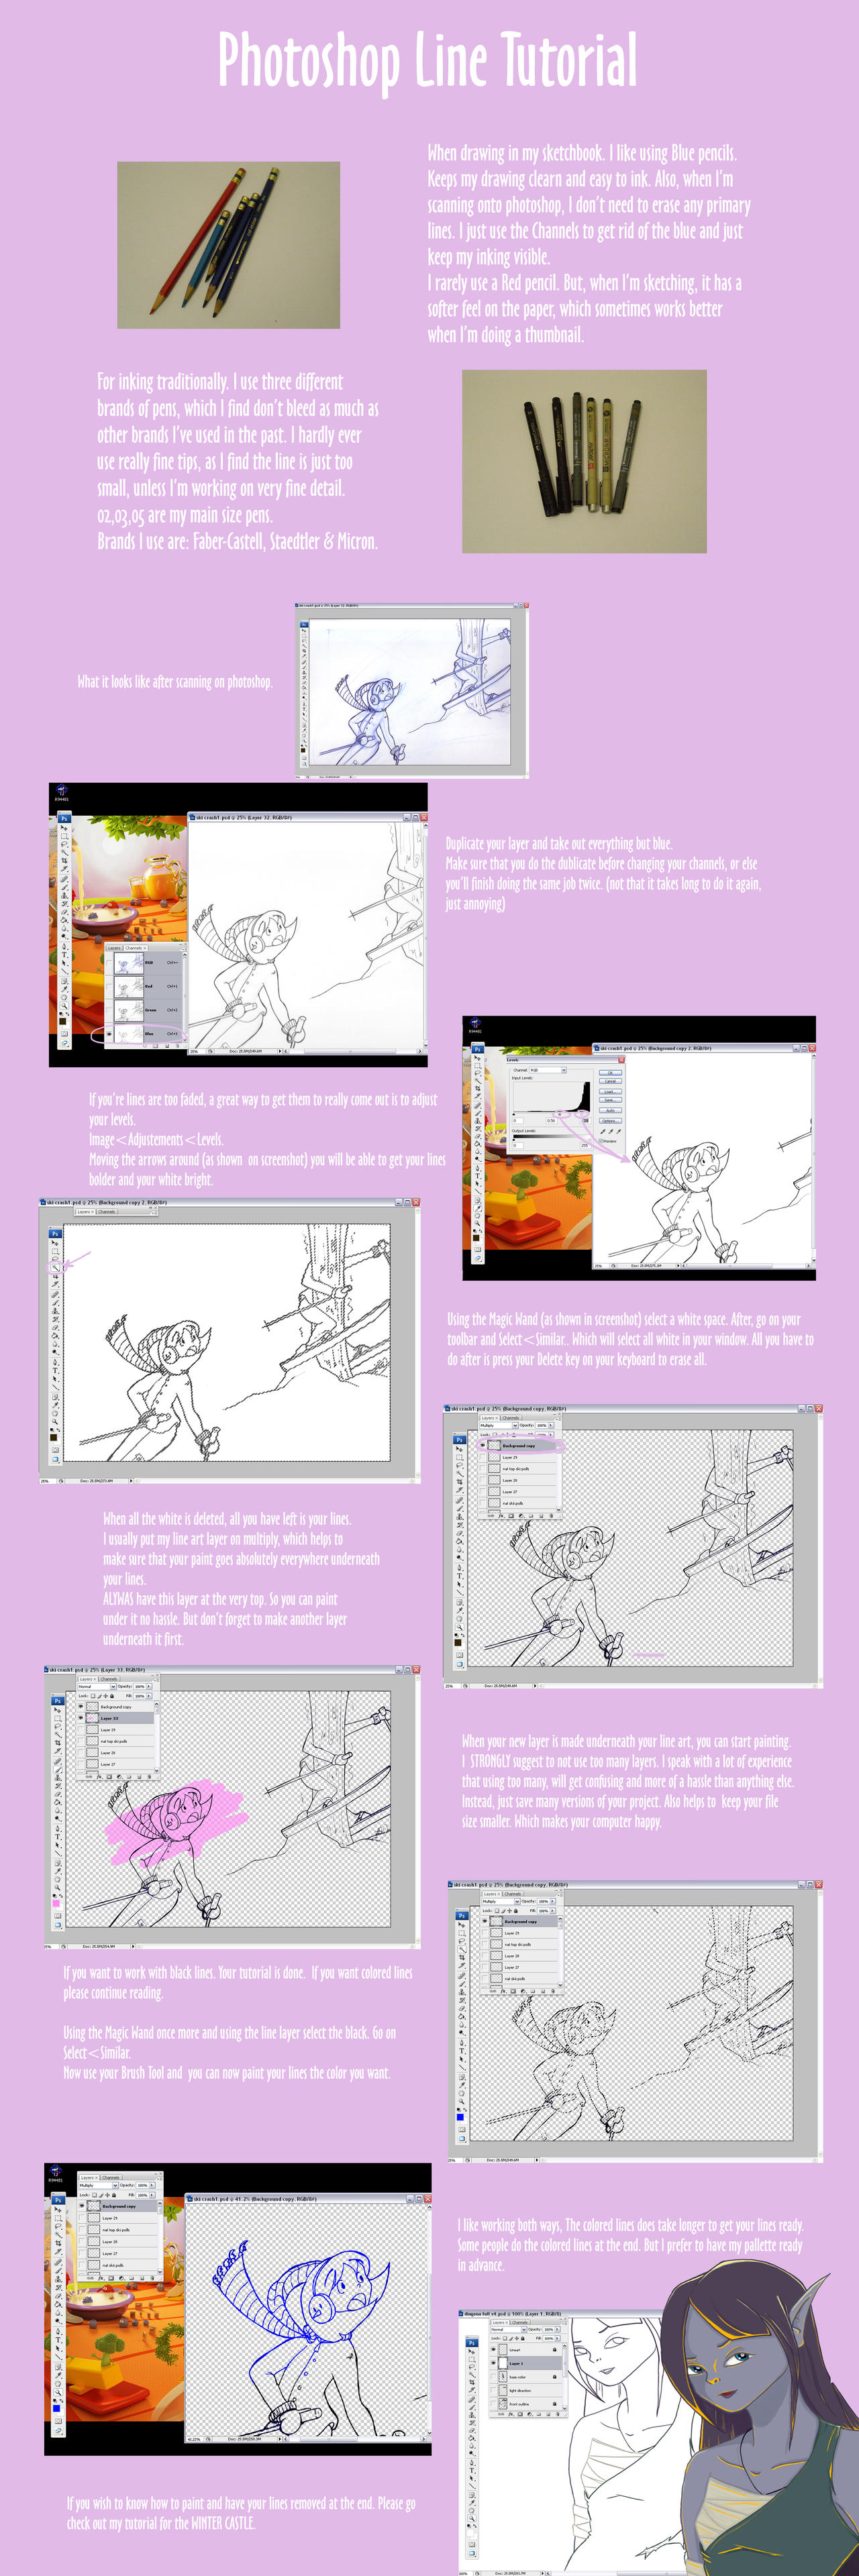 Photoshop line art tutorial by lstjules on deviantart photoshop line art tutorial by lstjules photoshop line art tutorial by lstjules baditri Gallery